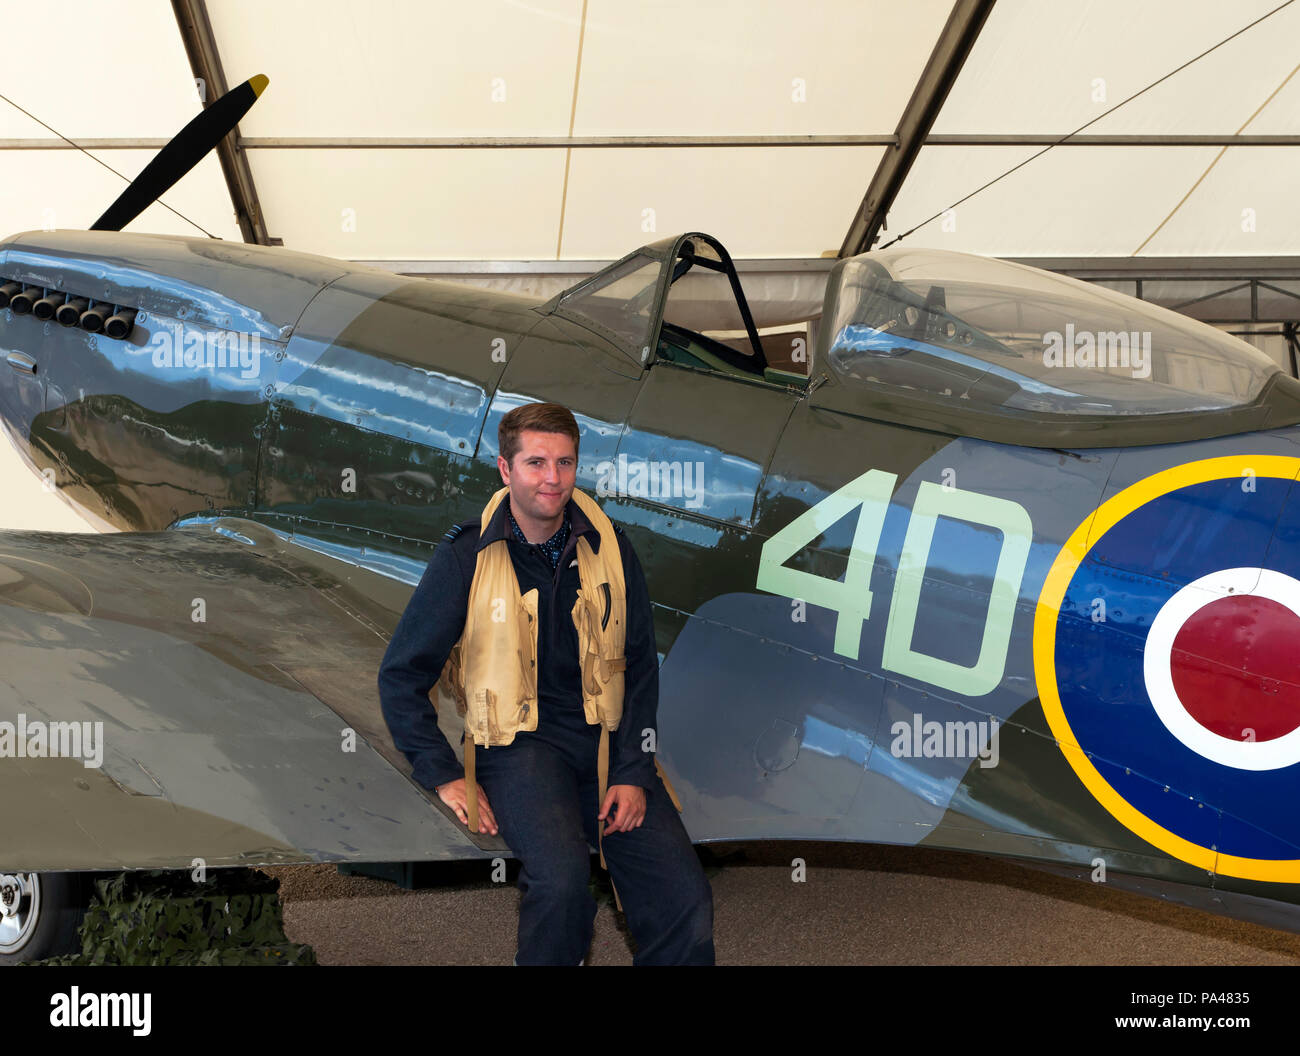 Man  in period pilots uniform, poses  by a  Supermarine Spitfire Mk XVI, part of the RAF Centennial Celebrations at  Horse Guards  Parade, London. - Stock Image